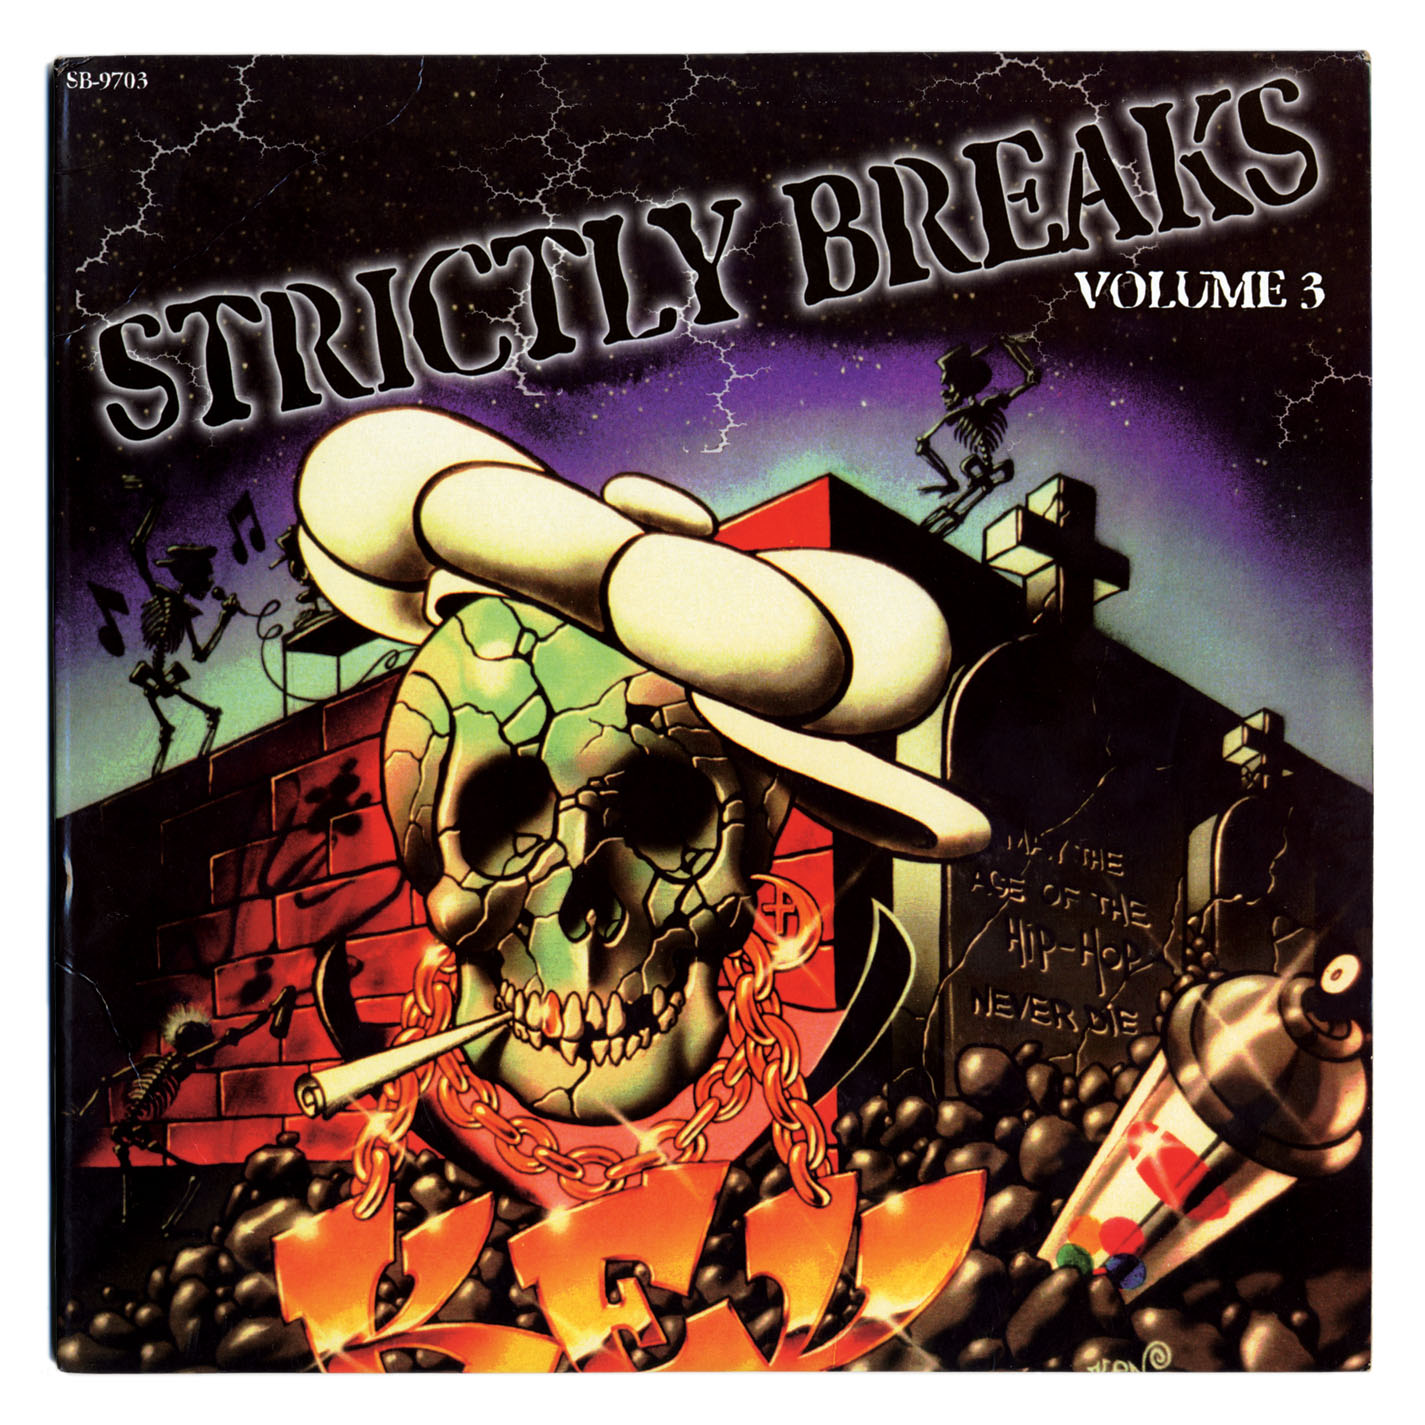 Strictly Breaks Volume 3 (1997) (CD) (320)